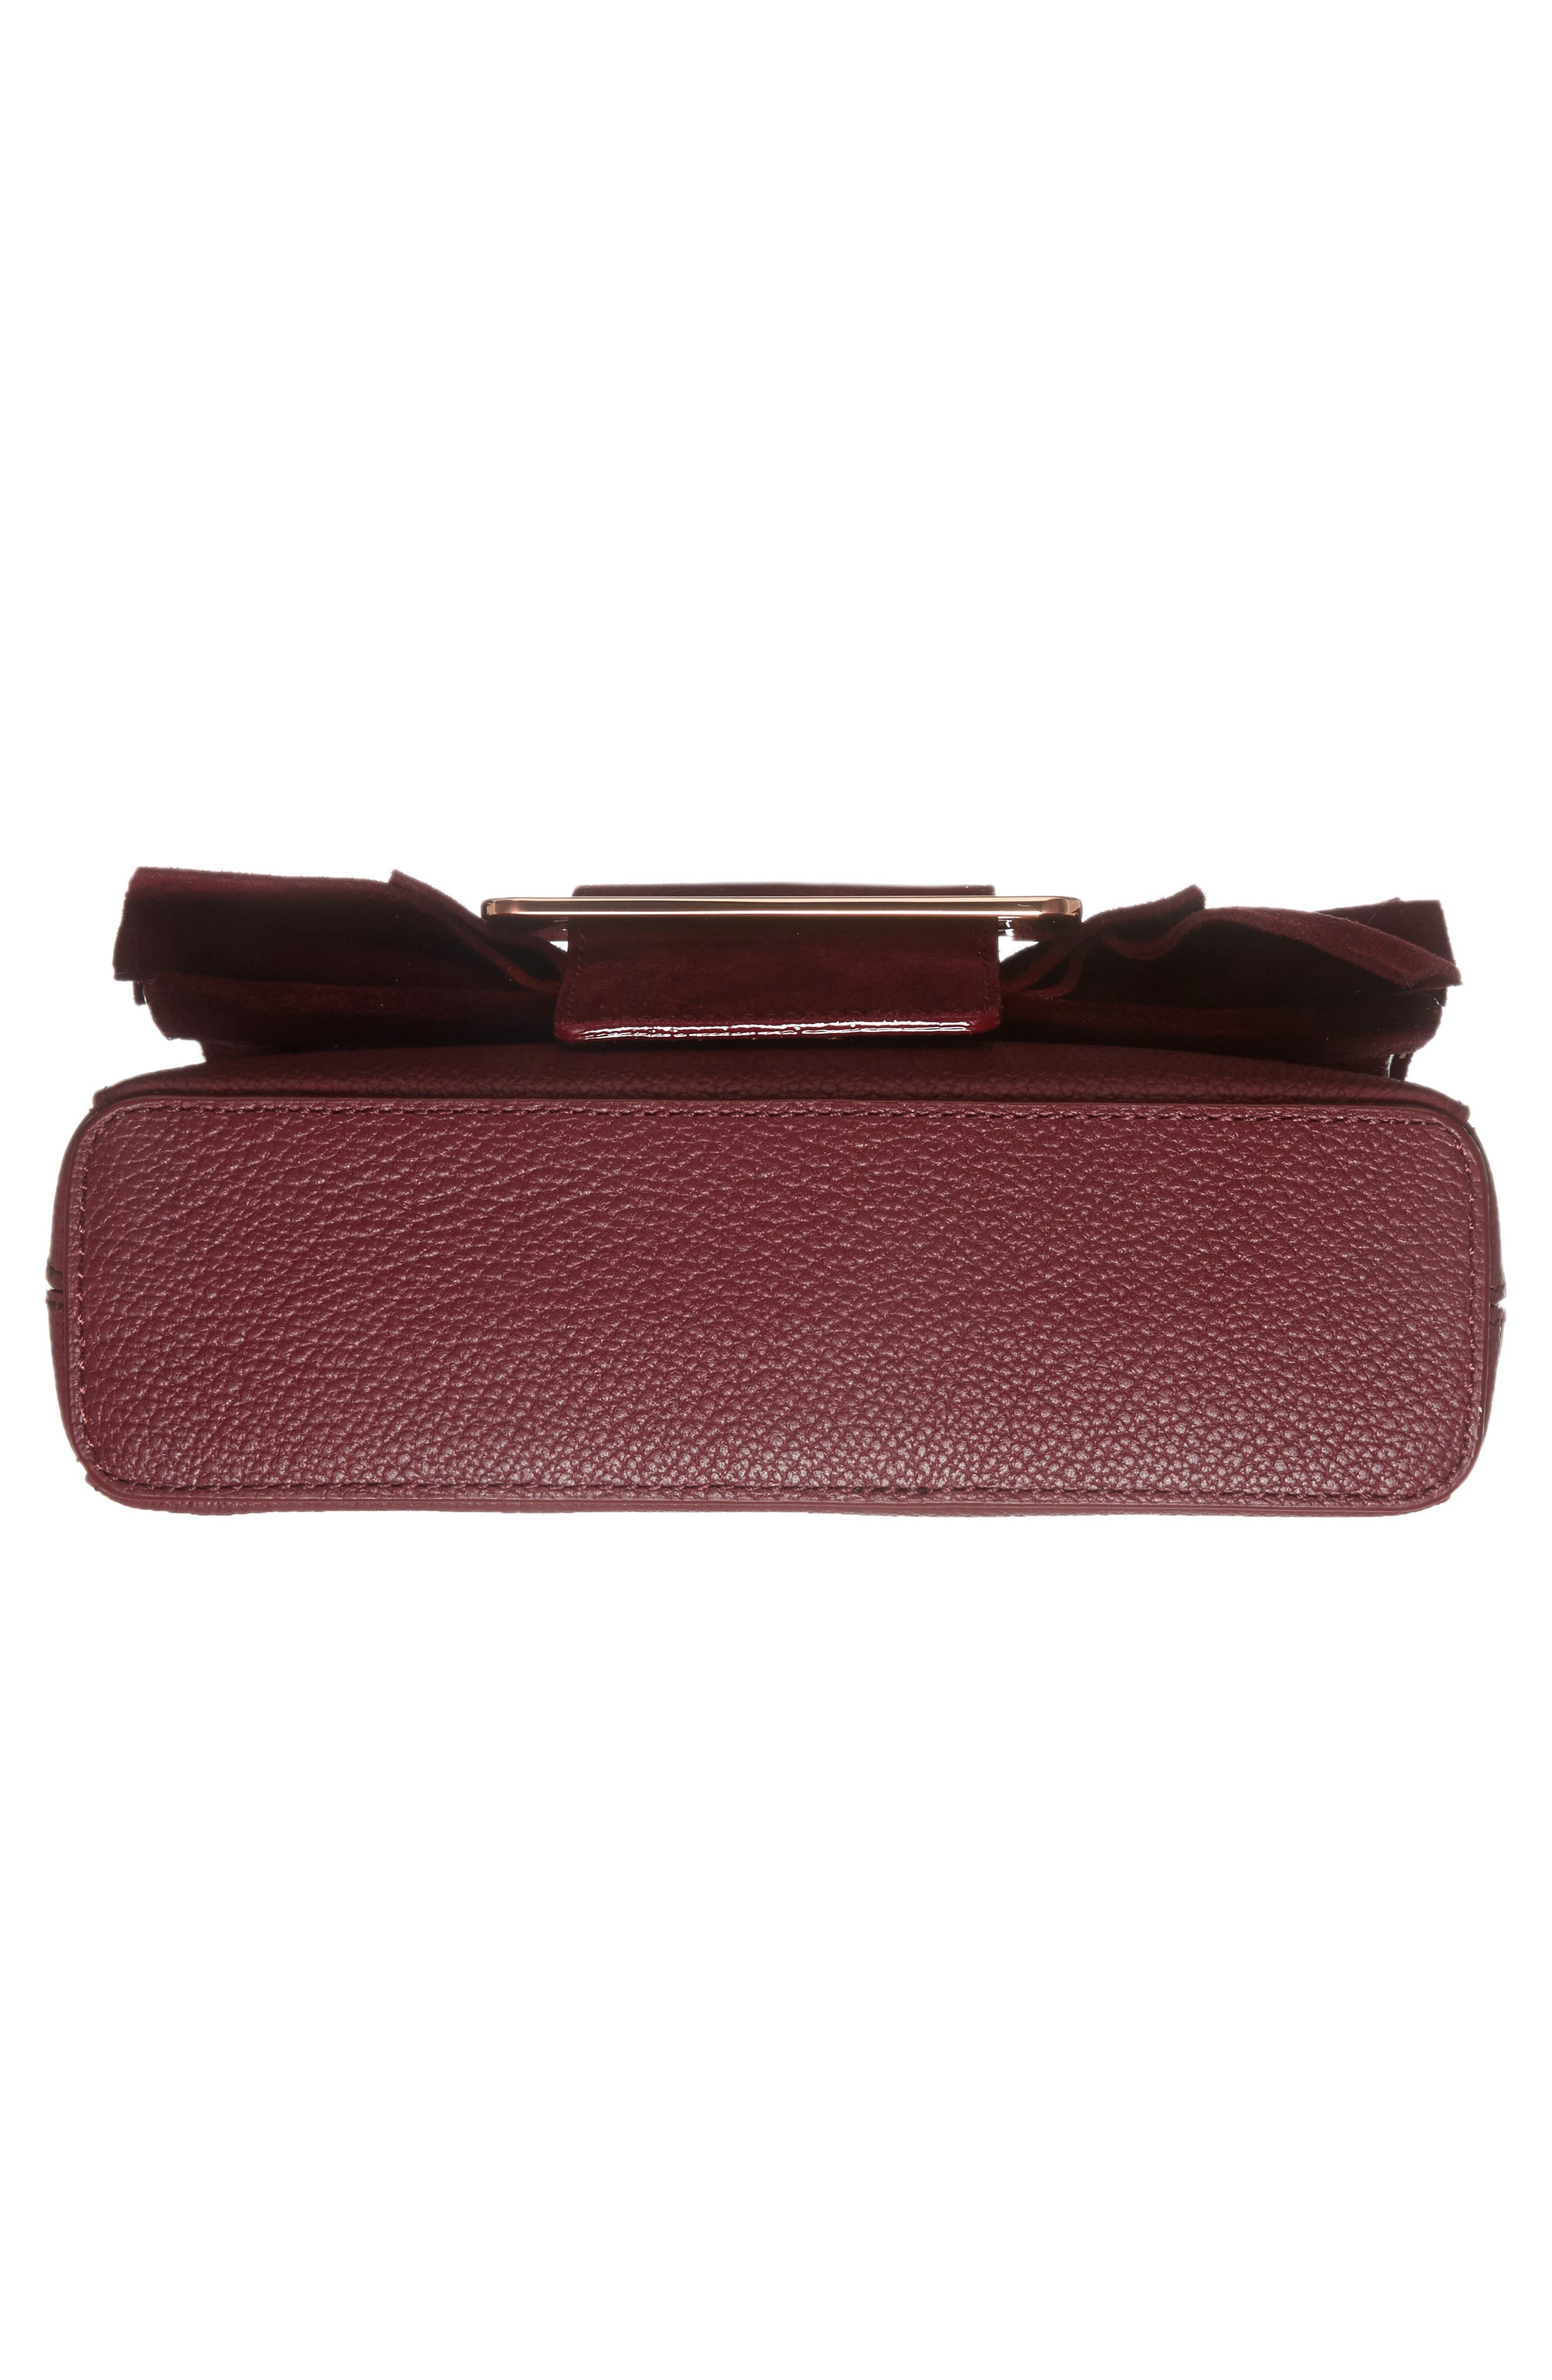 Nerinee Bow Buckle Clutch,                             Alternate thumbnail 17, color,